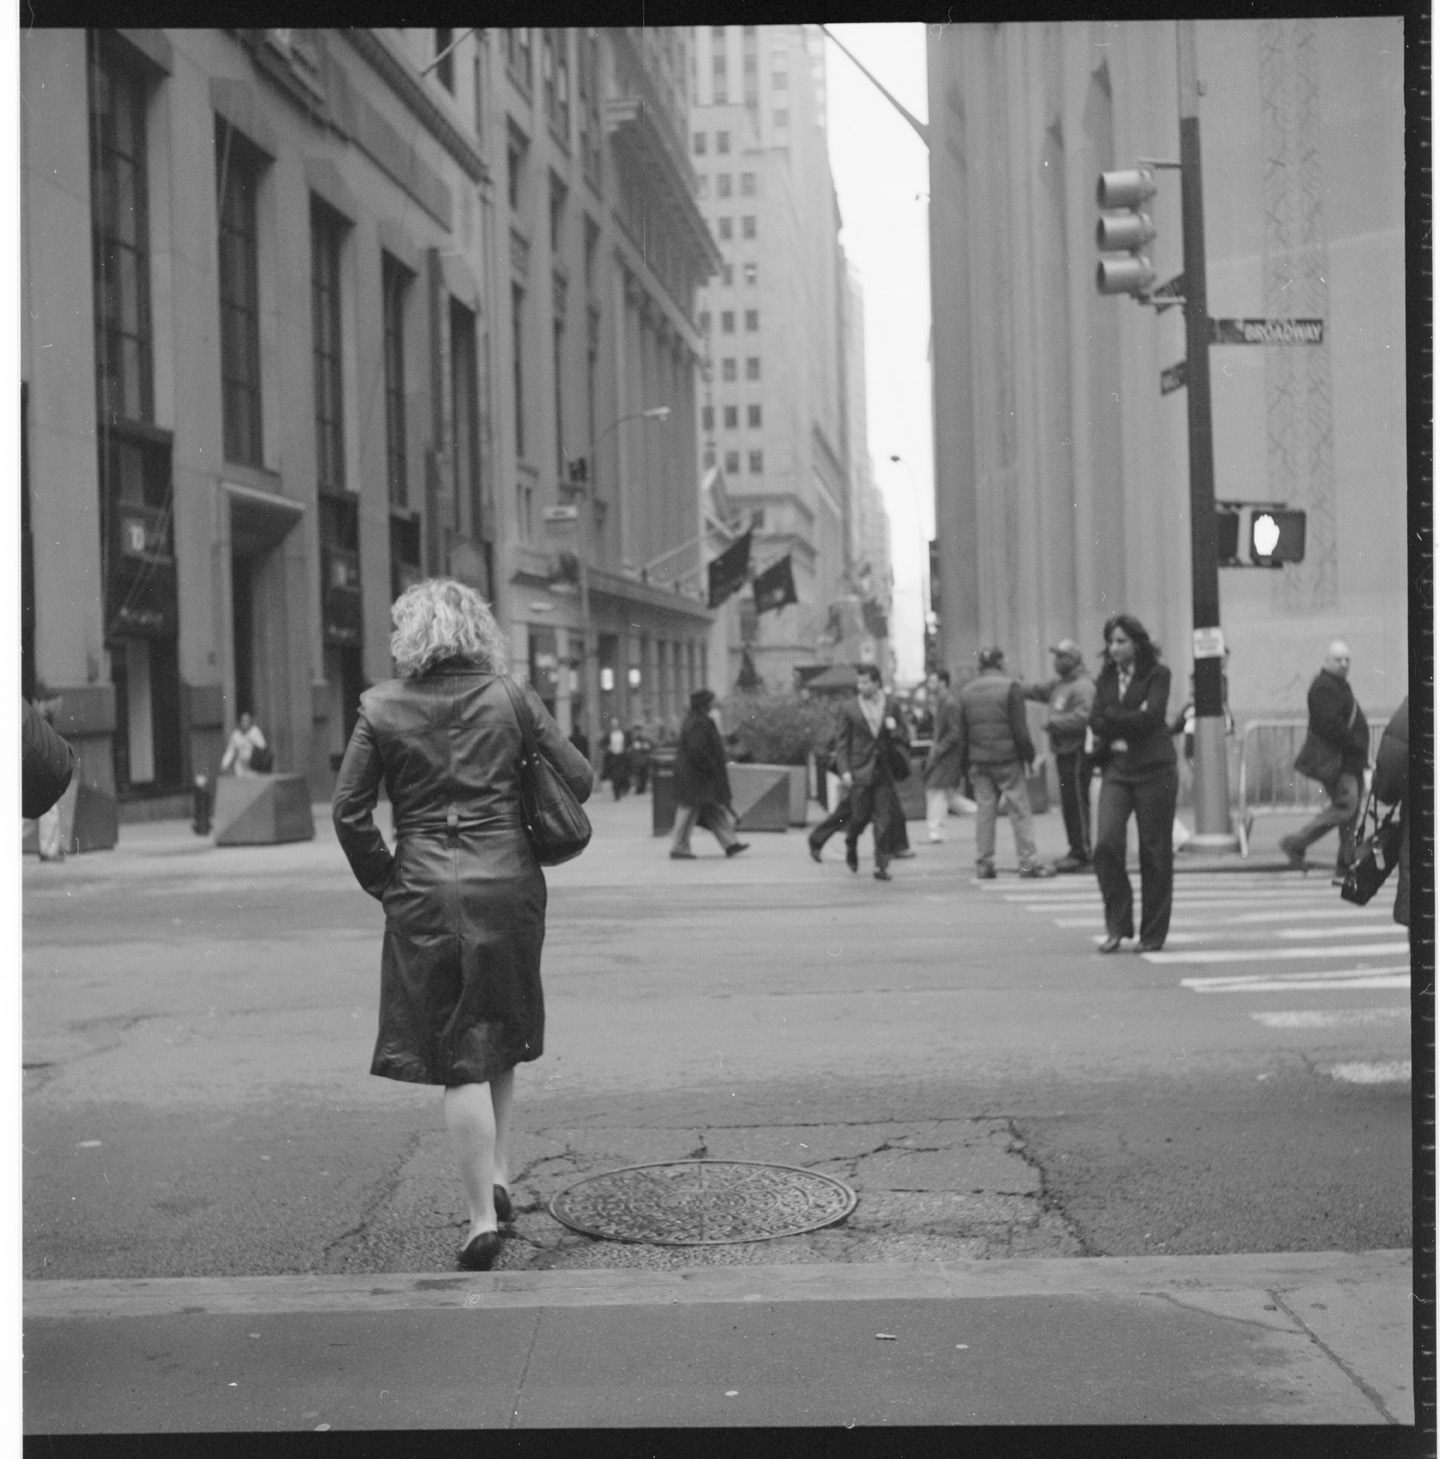 Crossing at Broadway and Wall St.